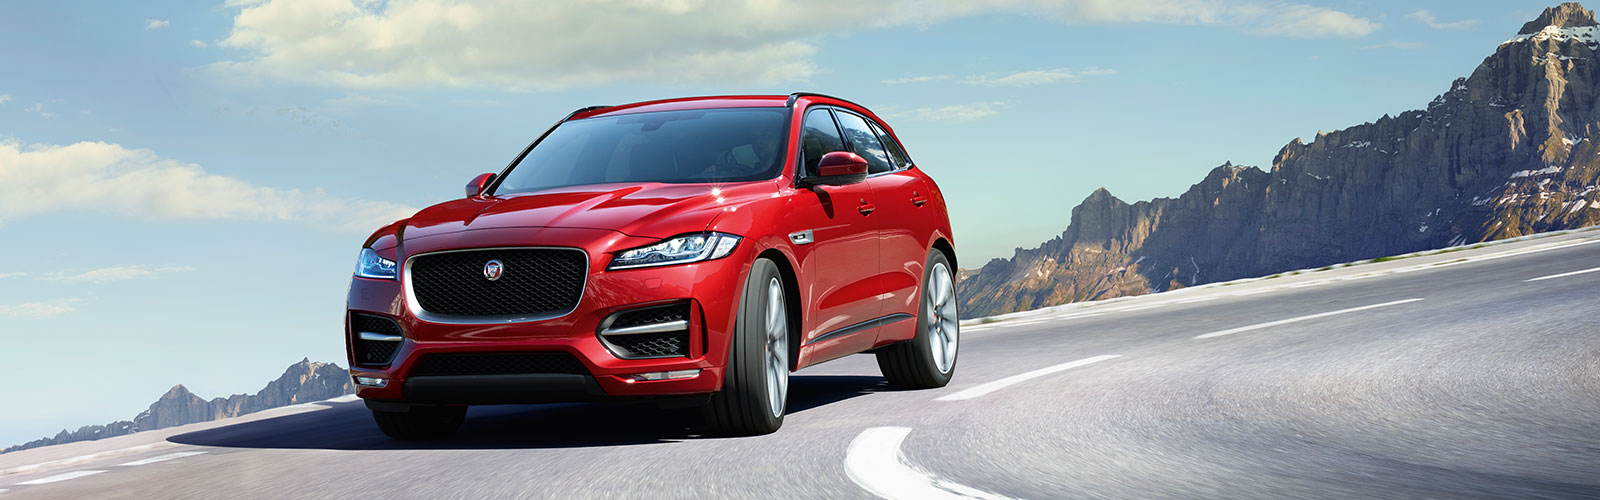 Red F-Pace on road in front of mountain range